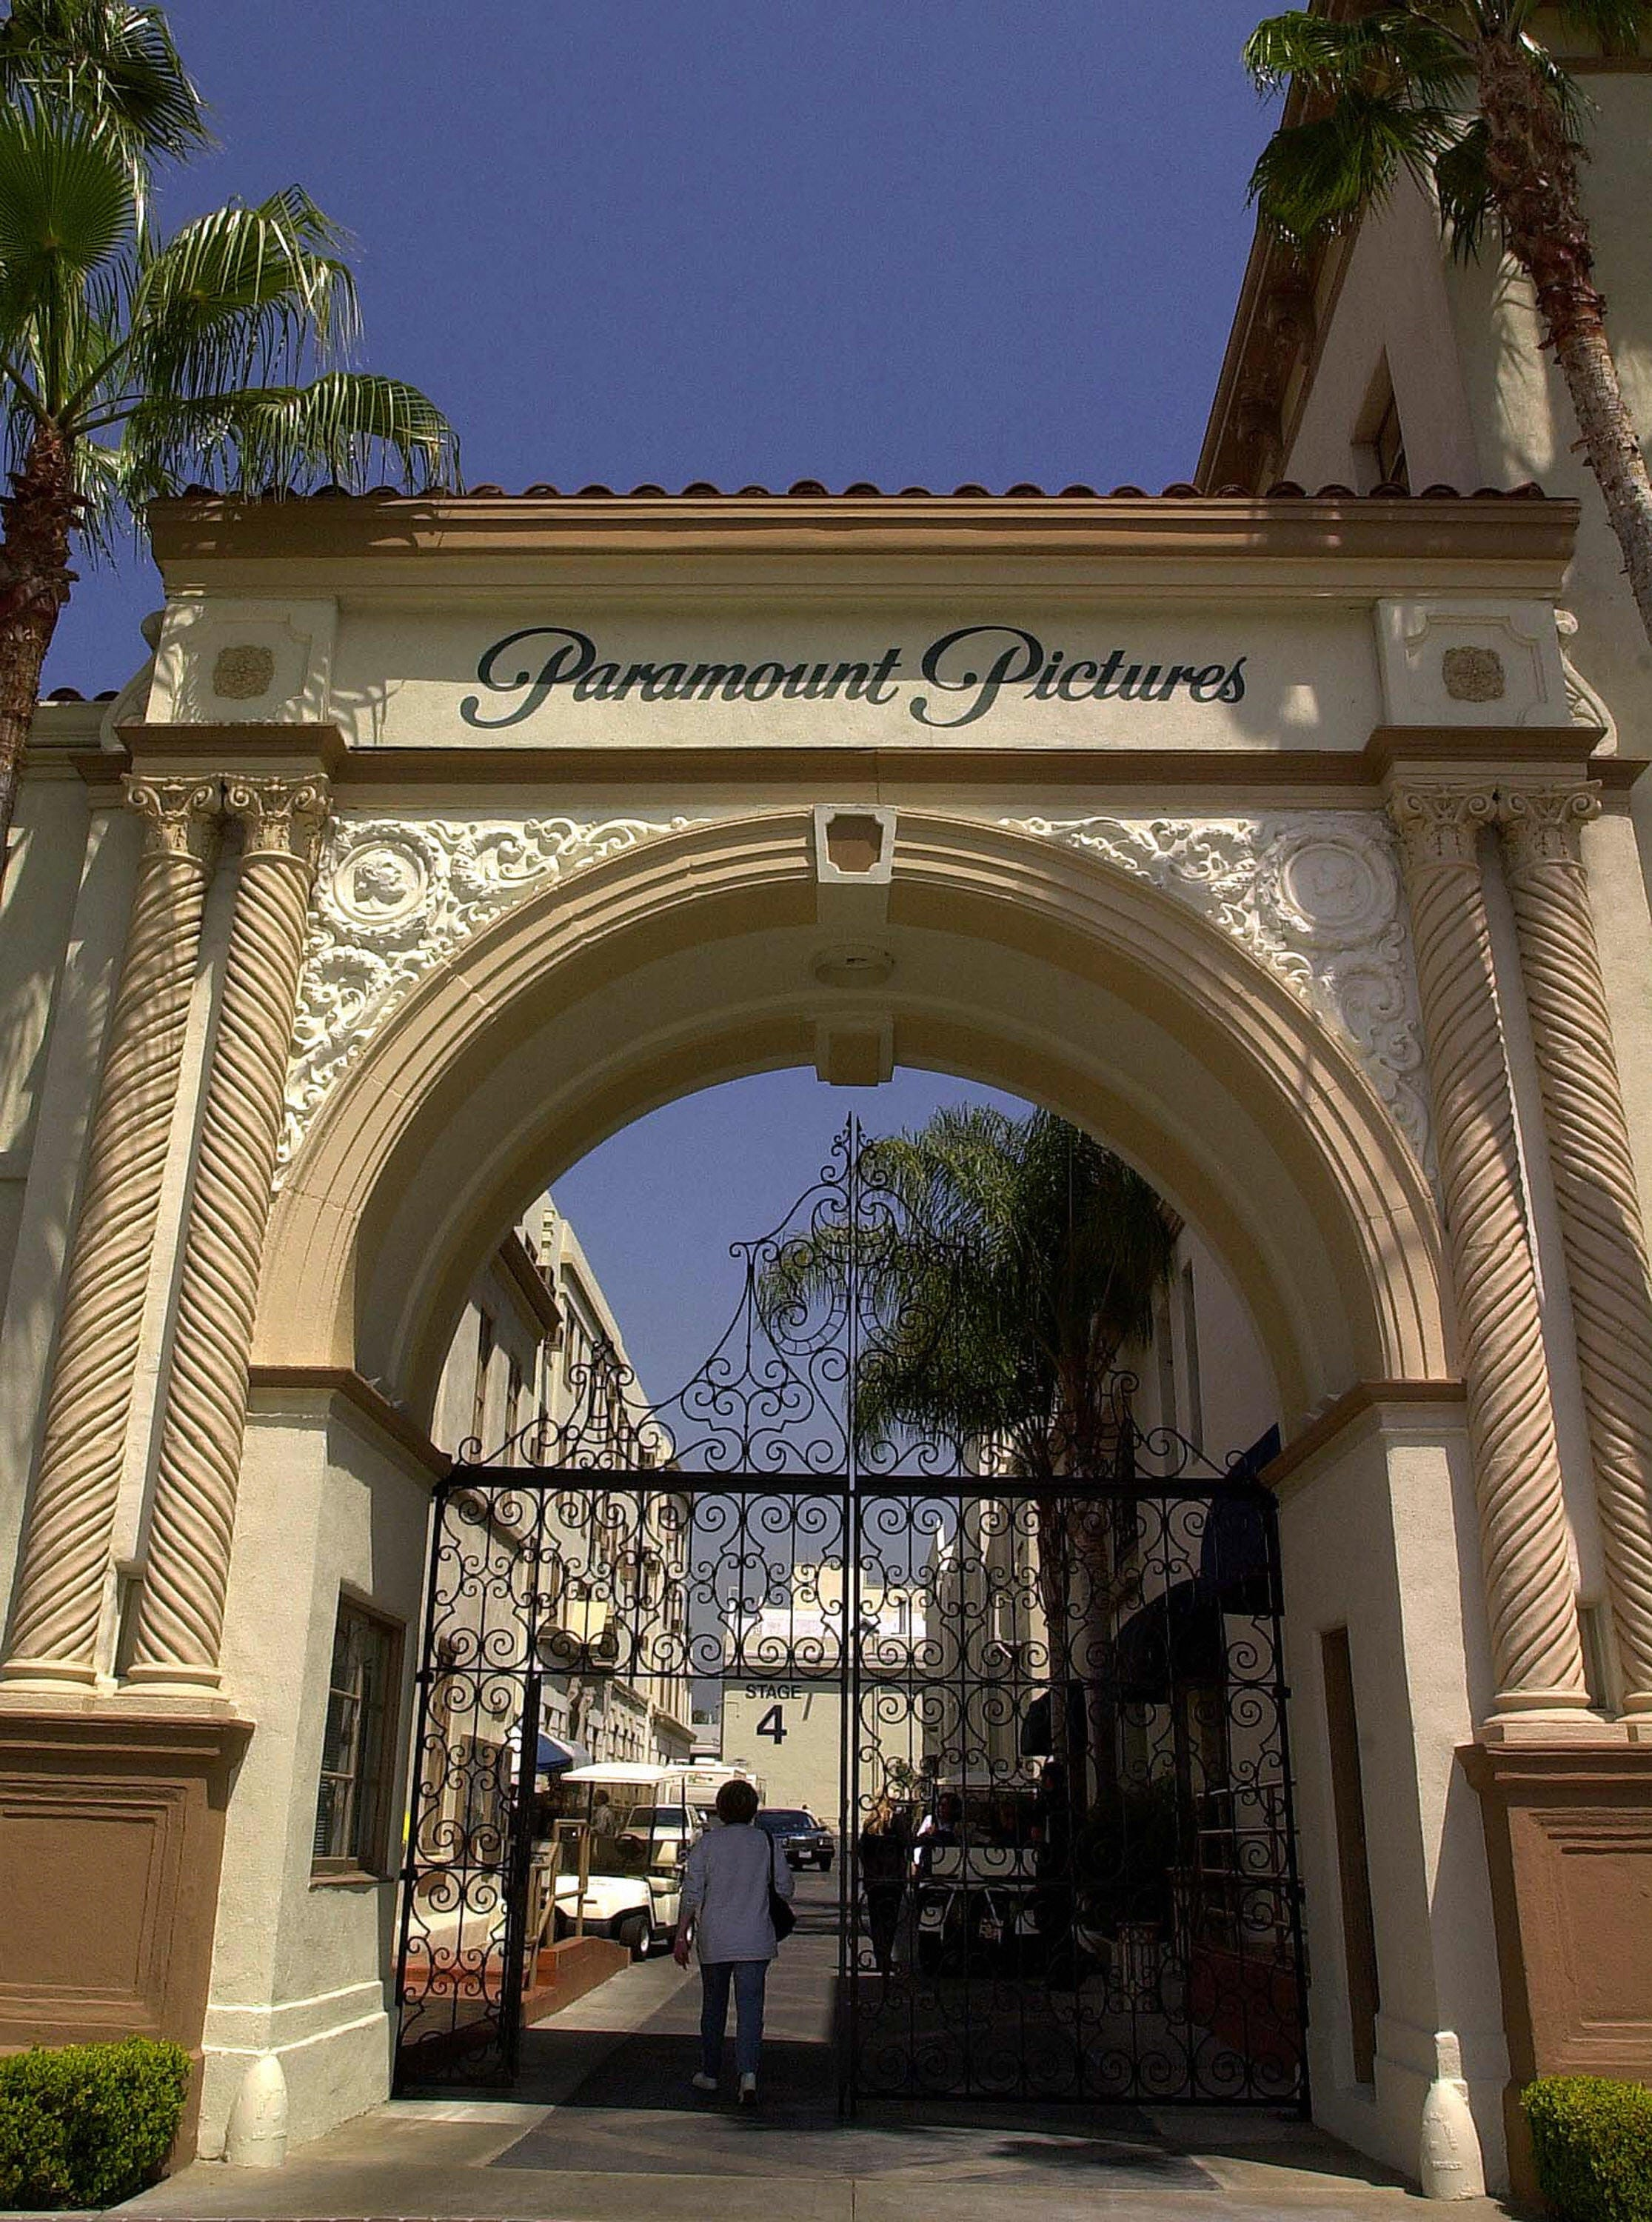 Paramount Pictures worker who barricaded himself inside Hollywood studio detained, police say